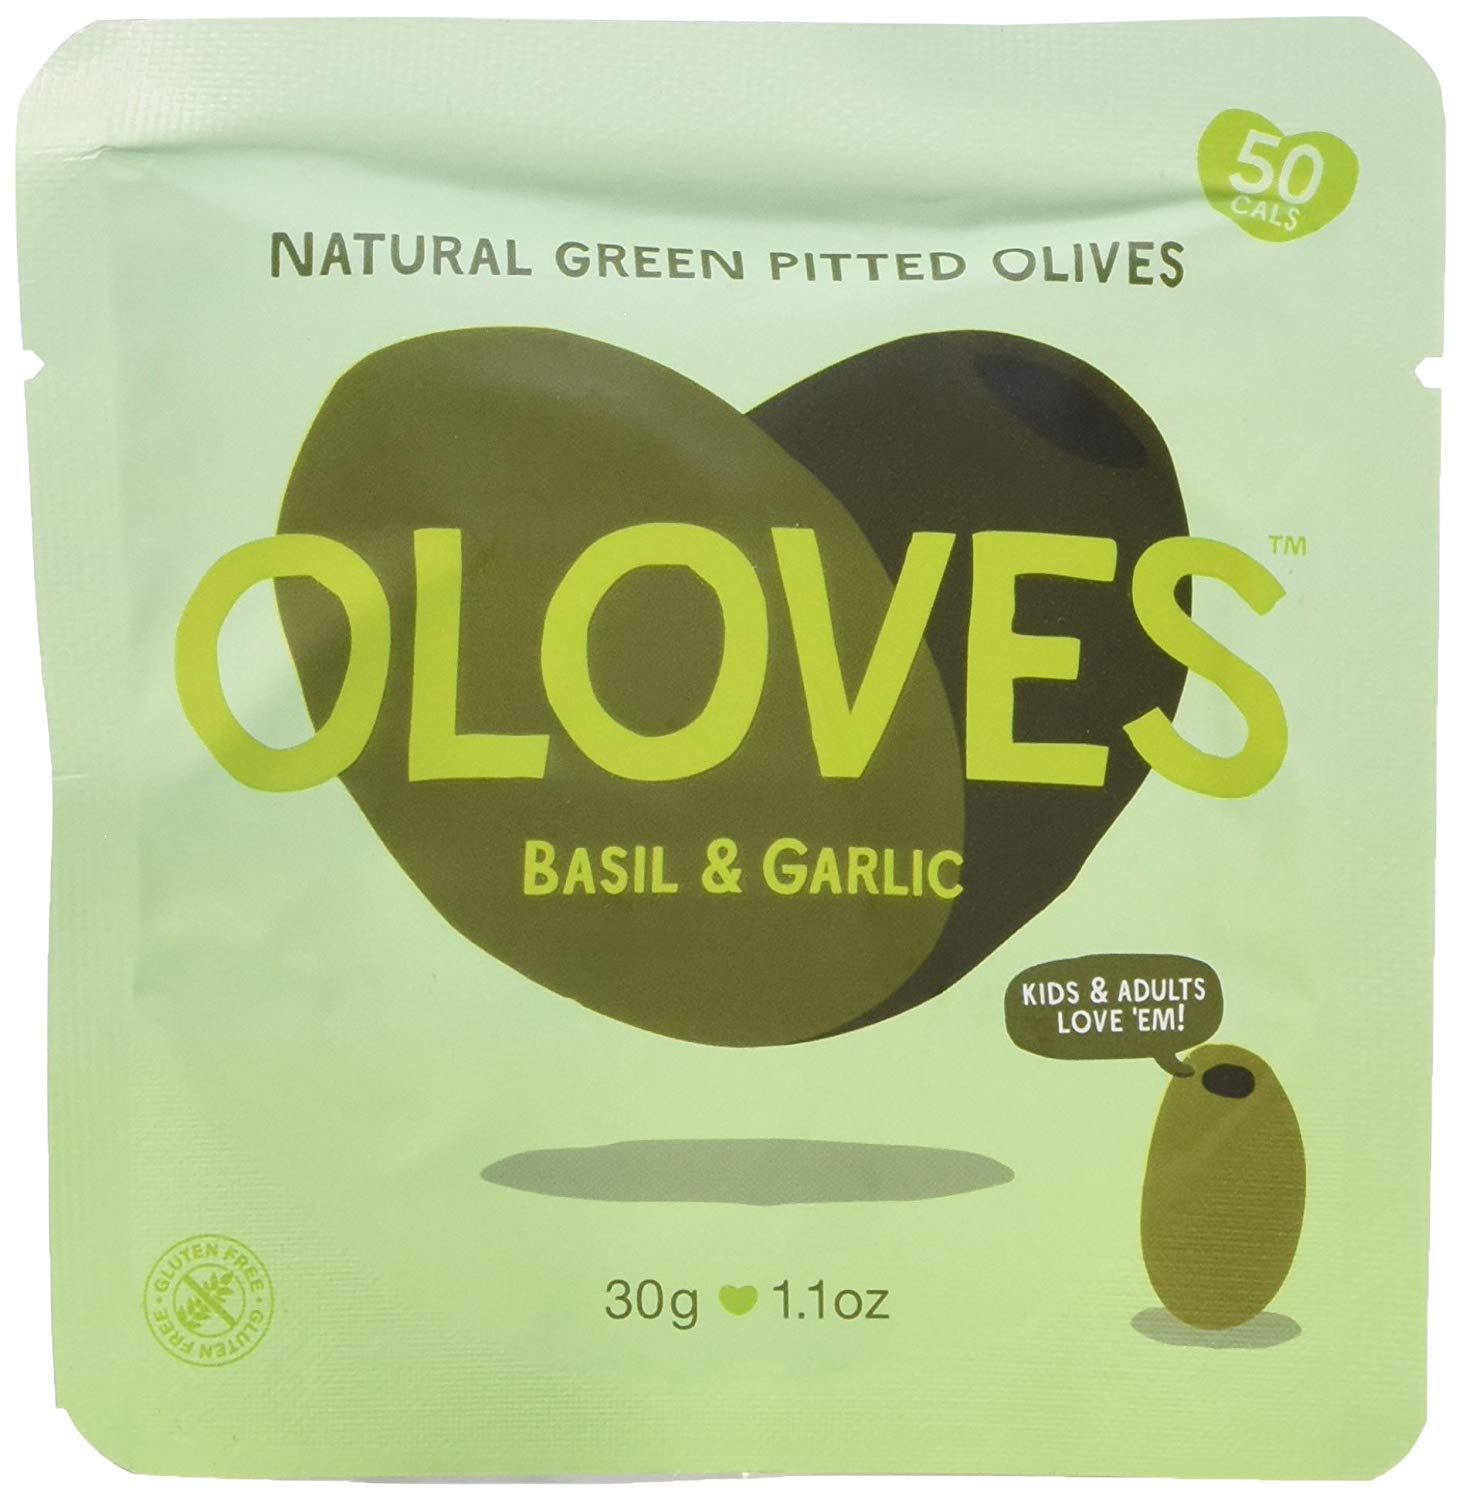 All stores are sold OLOVES Basil Garlic Spasm price Fresh Green Pitted Olives Natural All